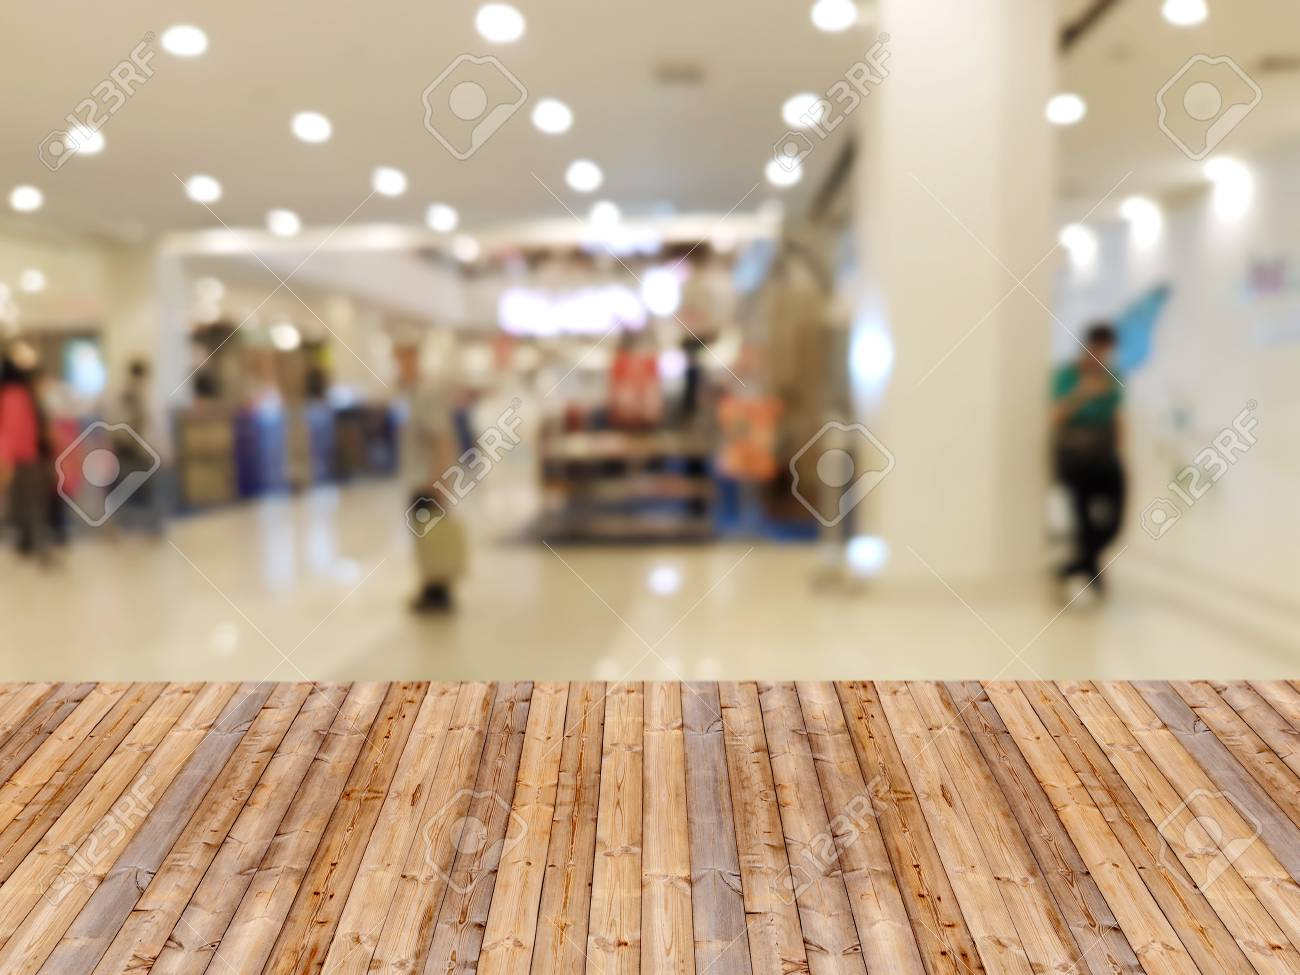 Wooden Table With Shopping Mall Blurred Background Stock Photo 1300x975